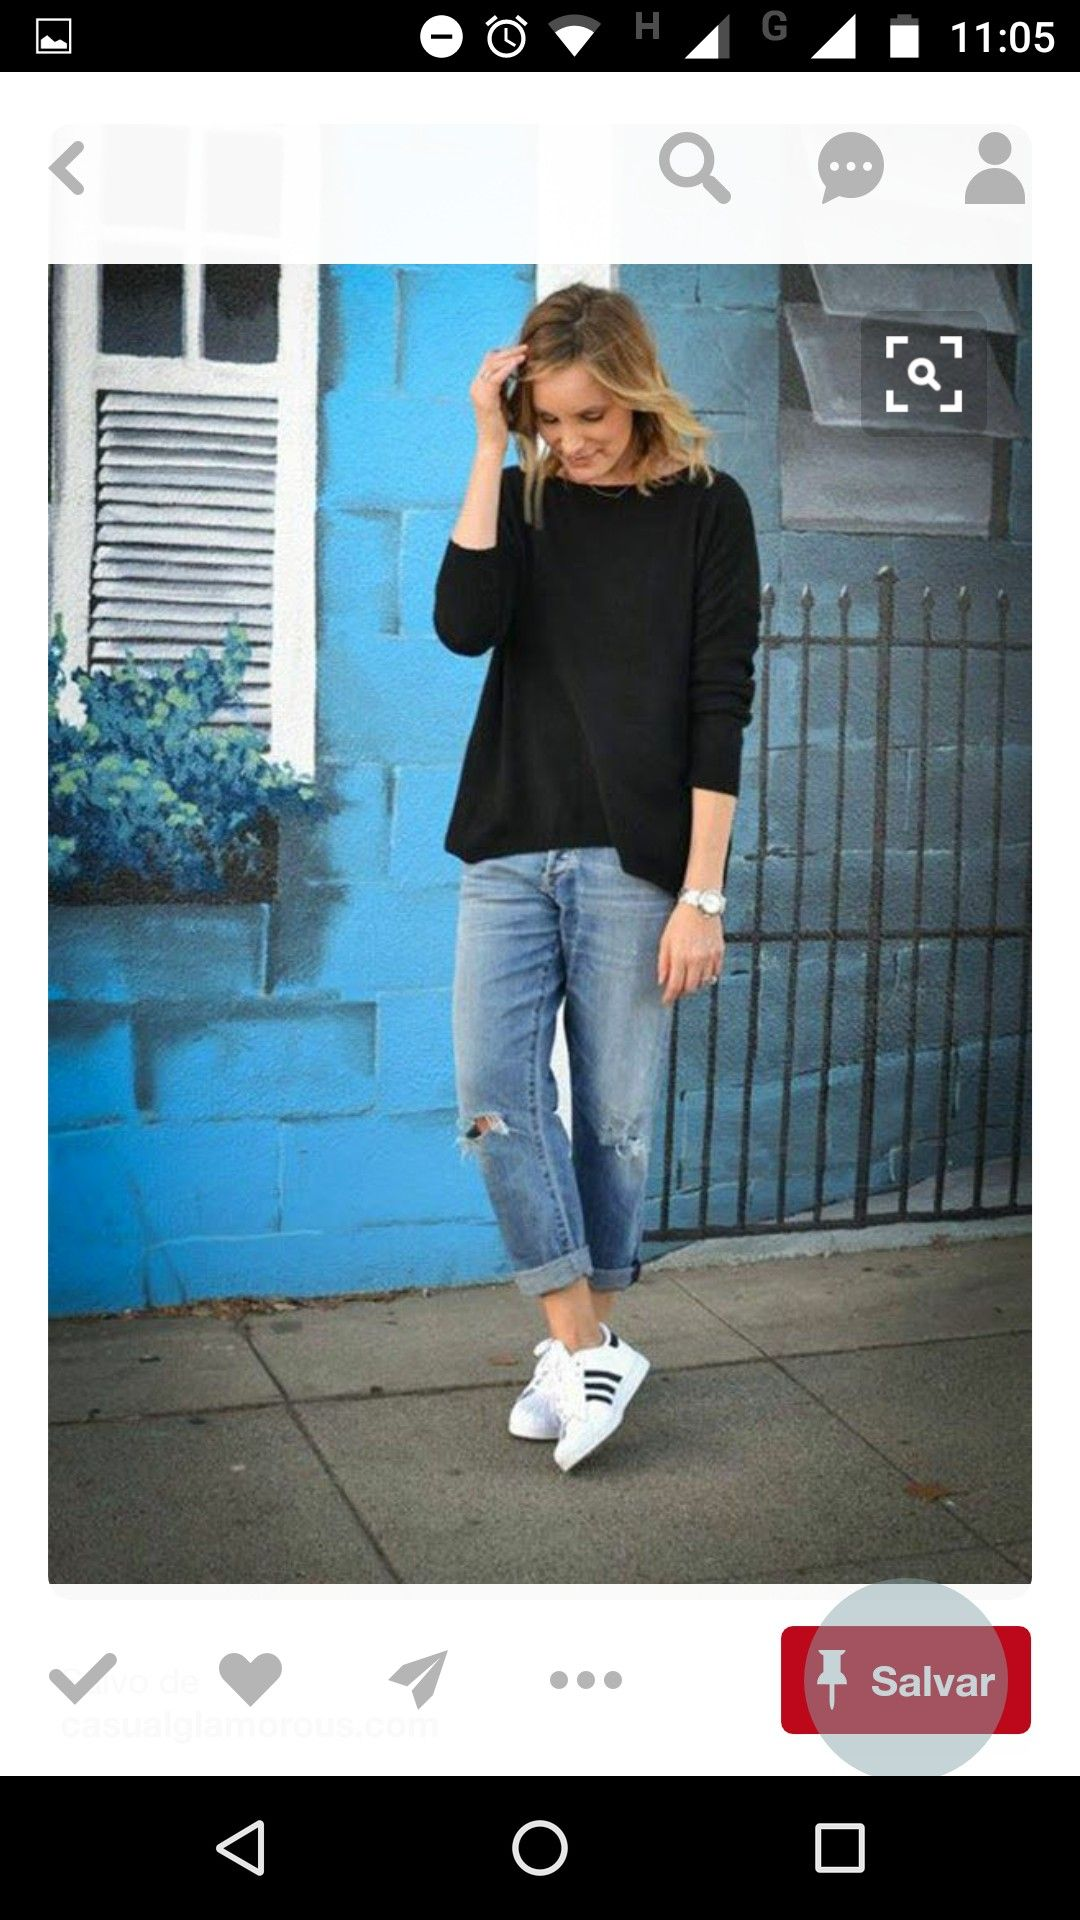 Women Shoes A | Clothes | Superstar outfit, Adidas superstar